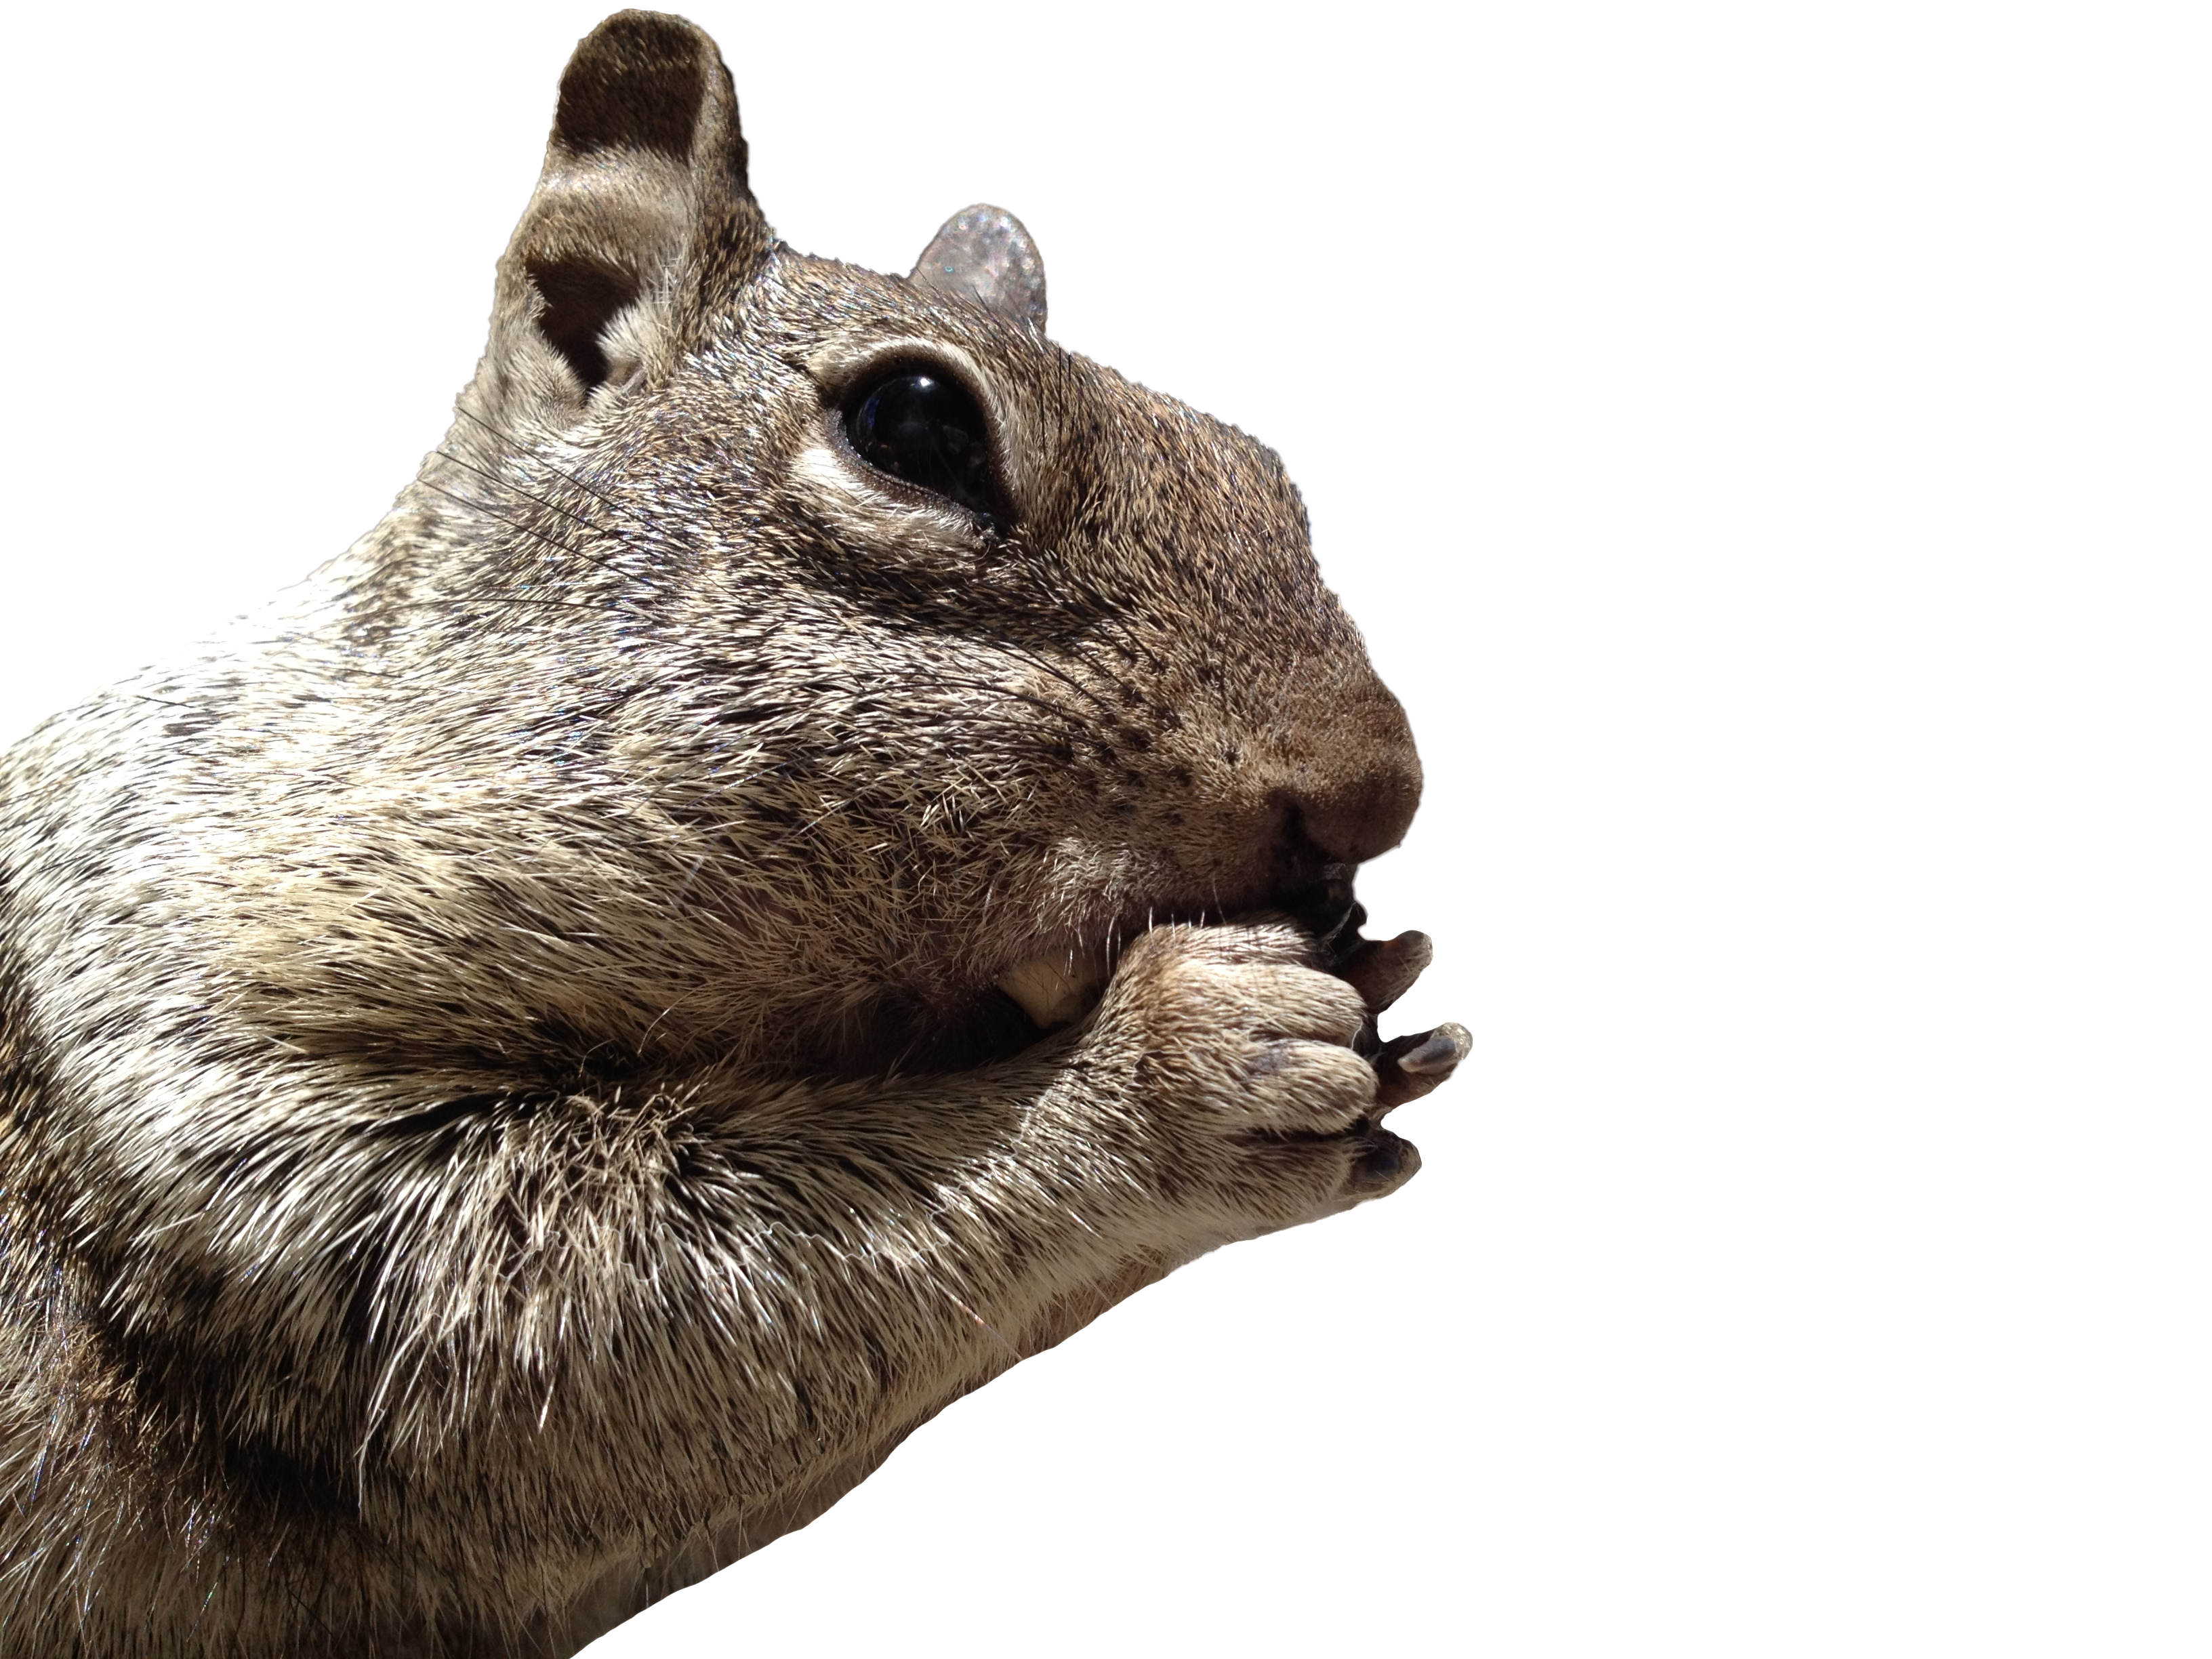 Squirrel head png. Iphone s between the